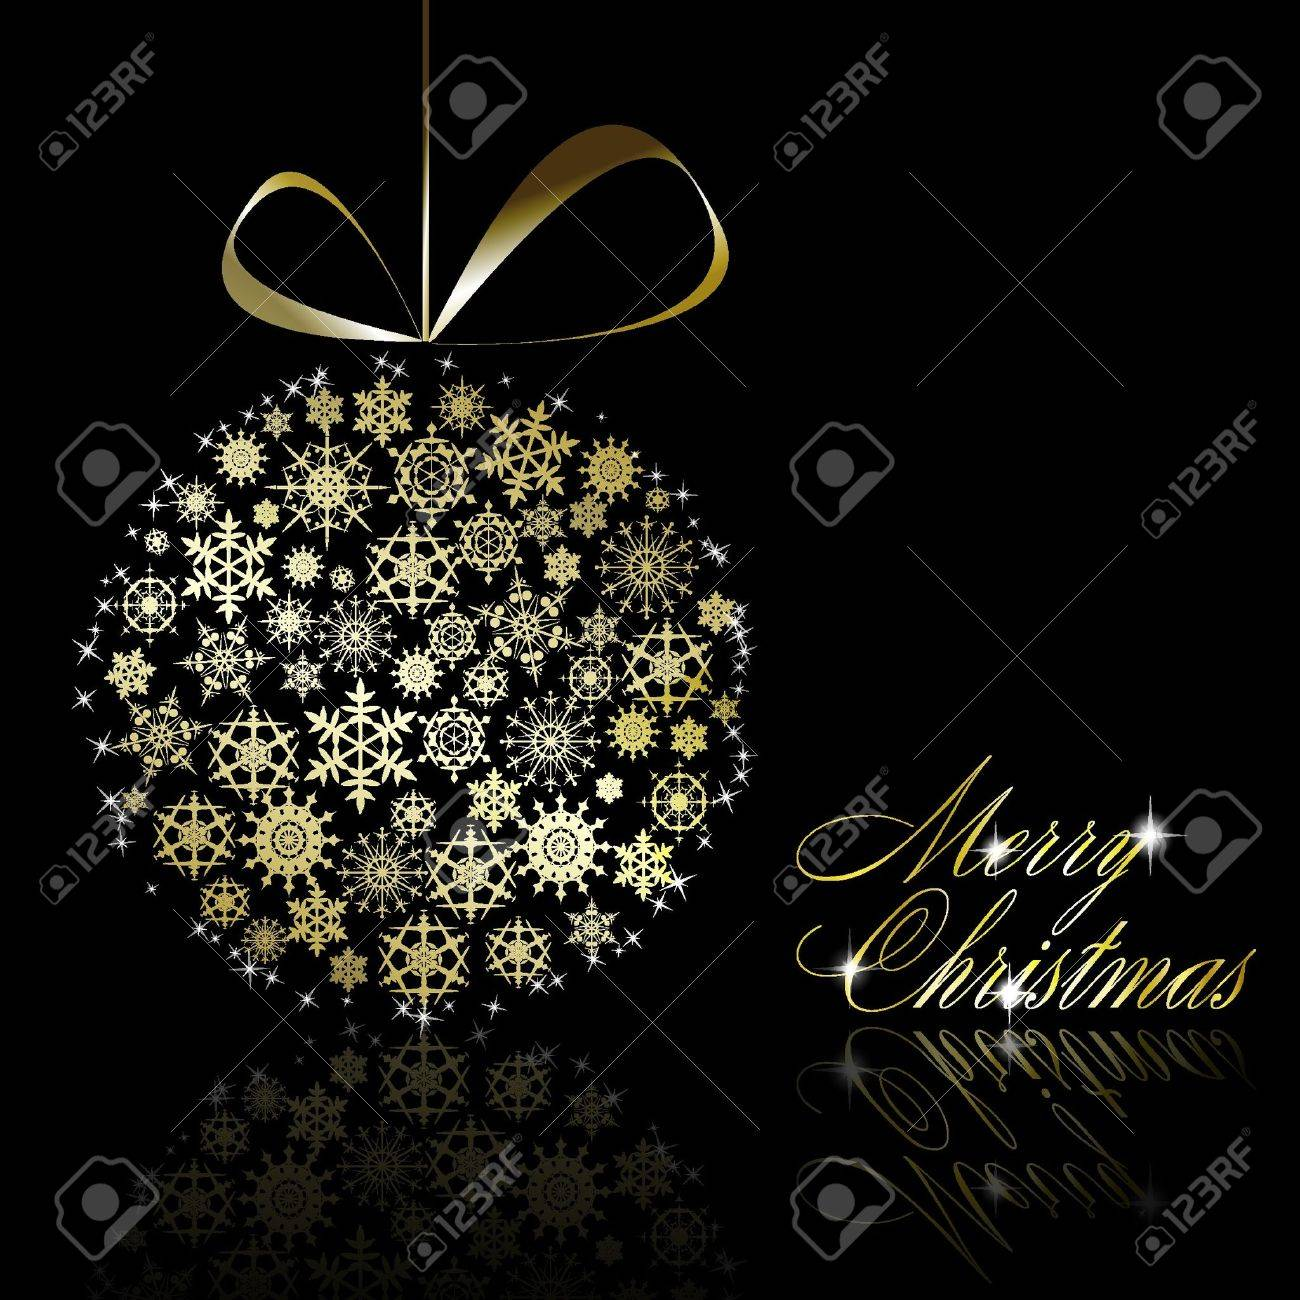 Golden Christmas ball made of gold snowflakes with stars on black background. illustration - 8687395